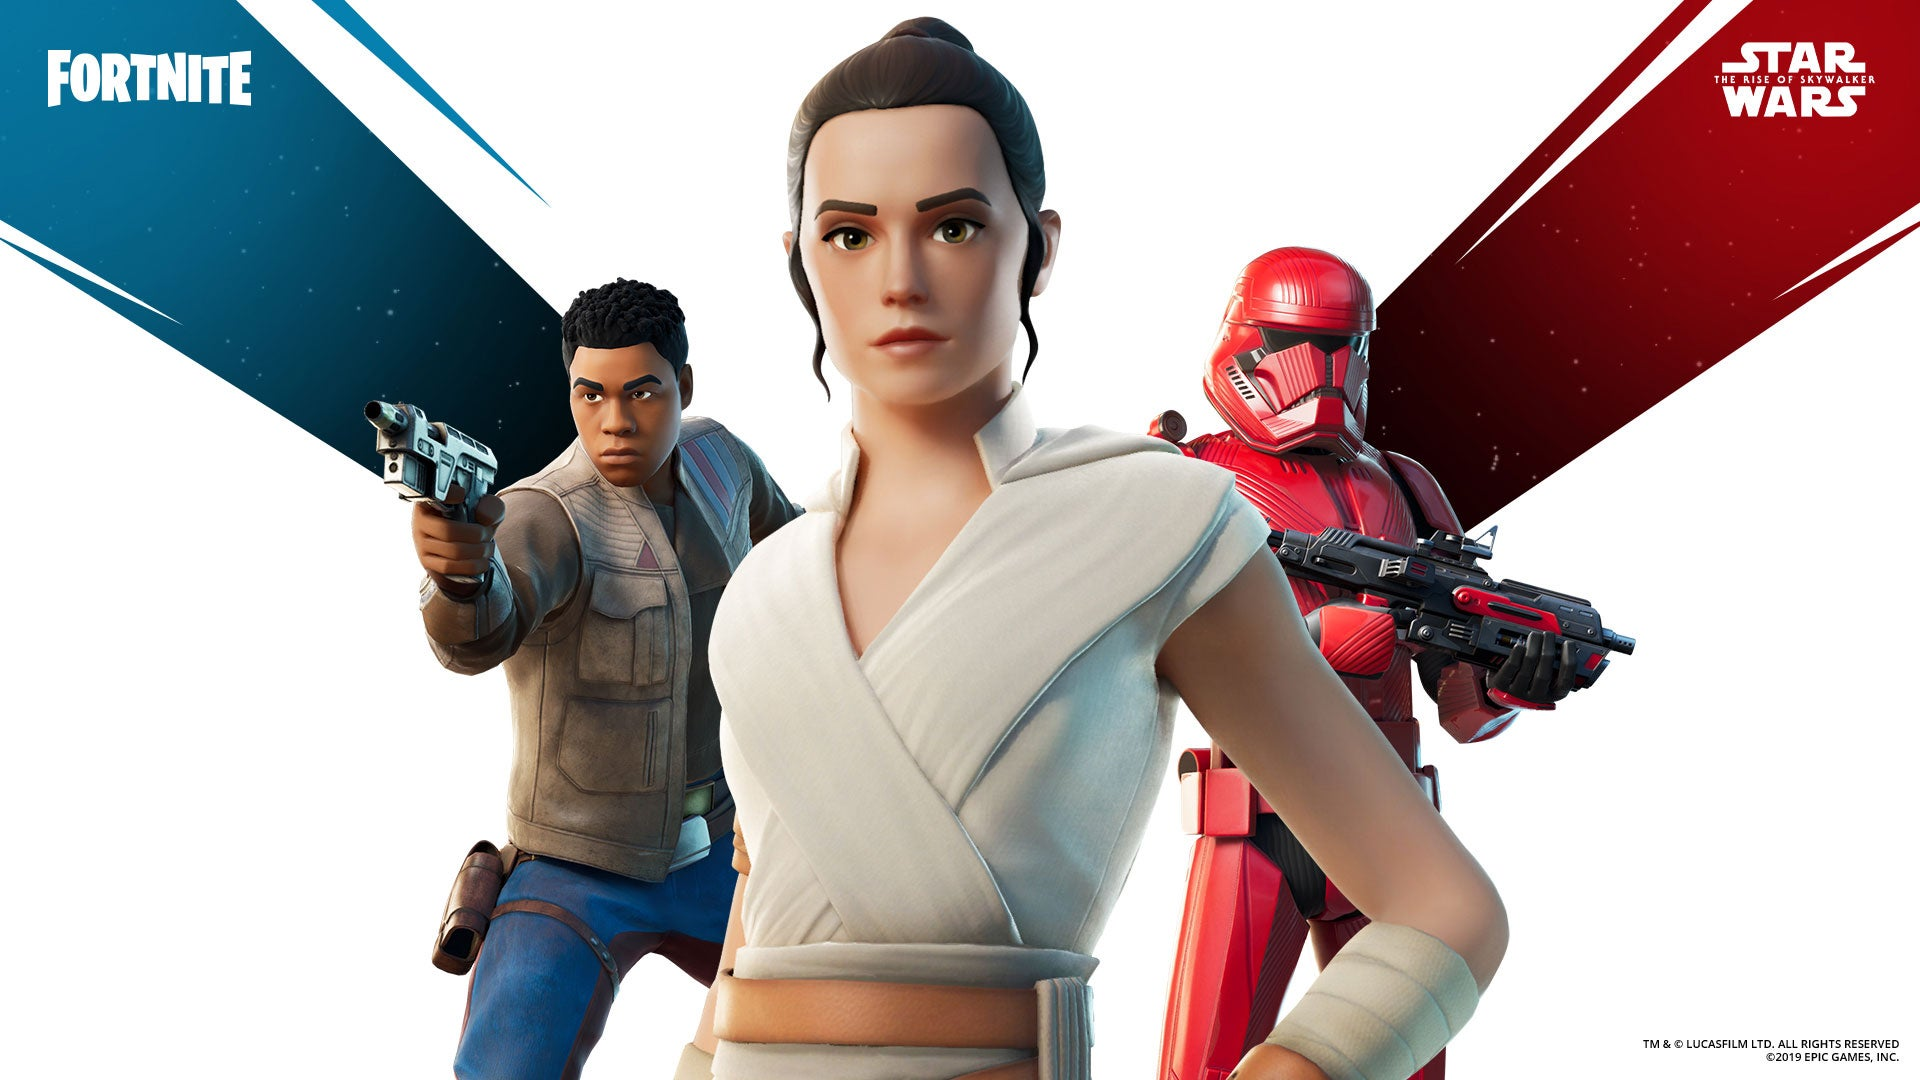 To Go With The Already-released Stormtrooper, Fortnite Is Getting Some Extra Star Wars Stuff In The